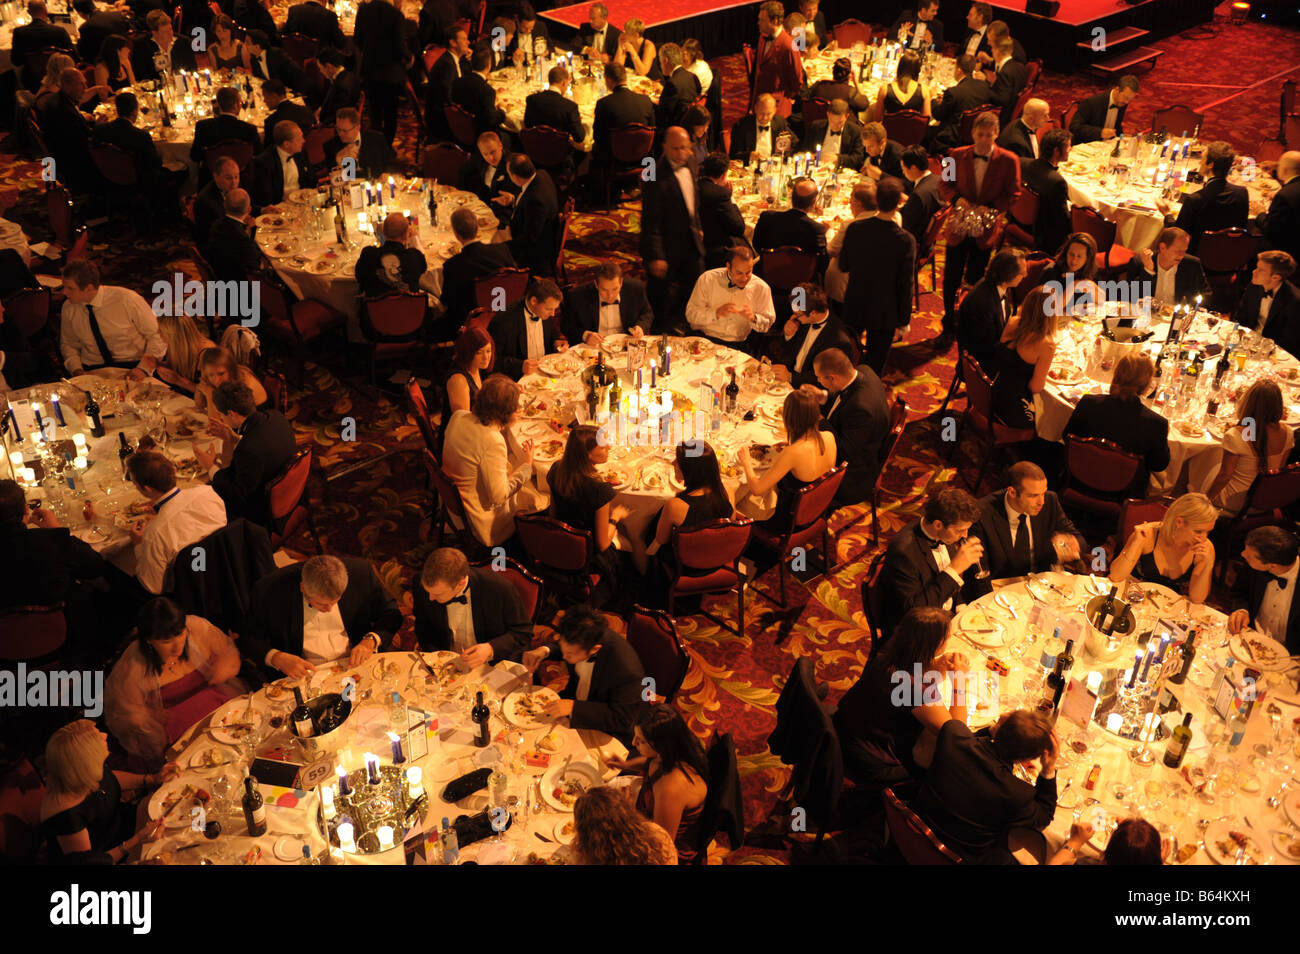 Large evening dinner function with many tables of people. Elevated aerial view. - Stock Image